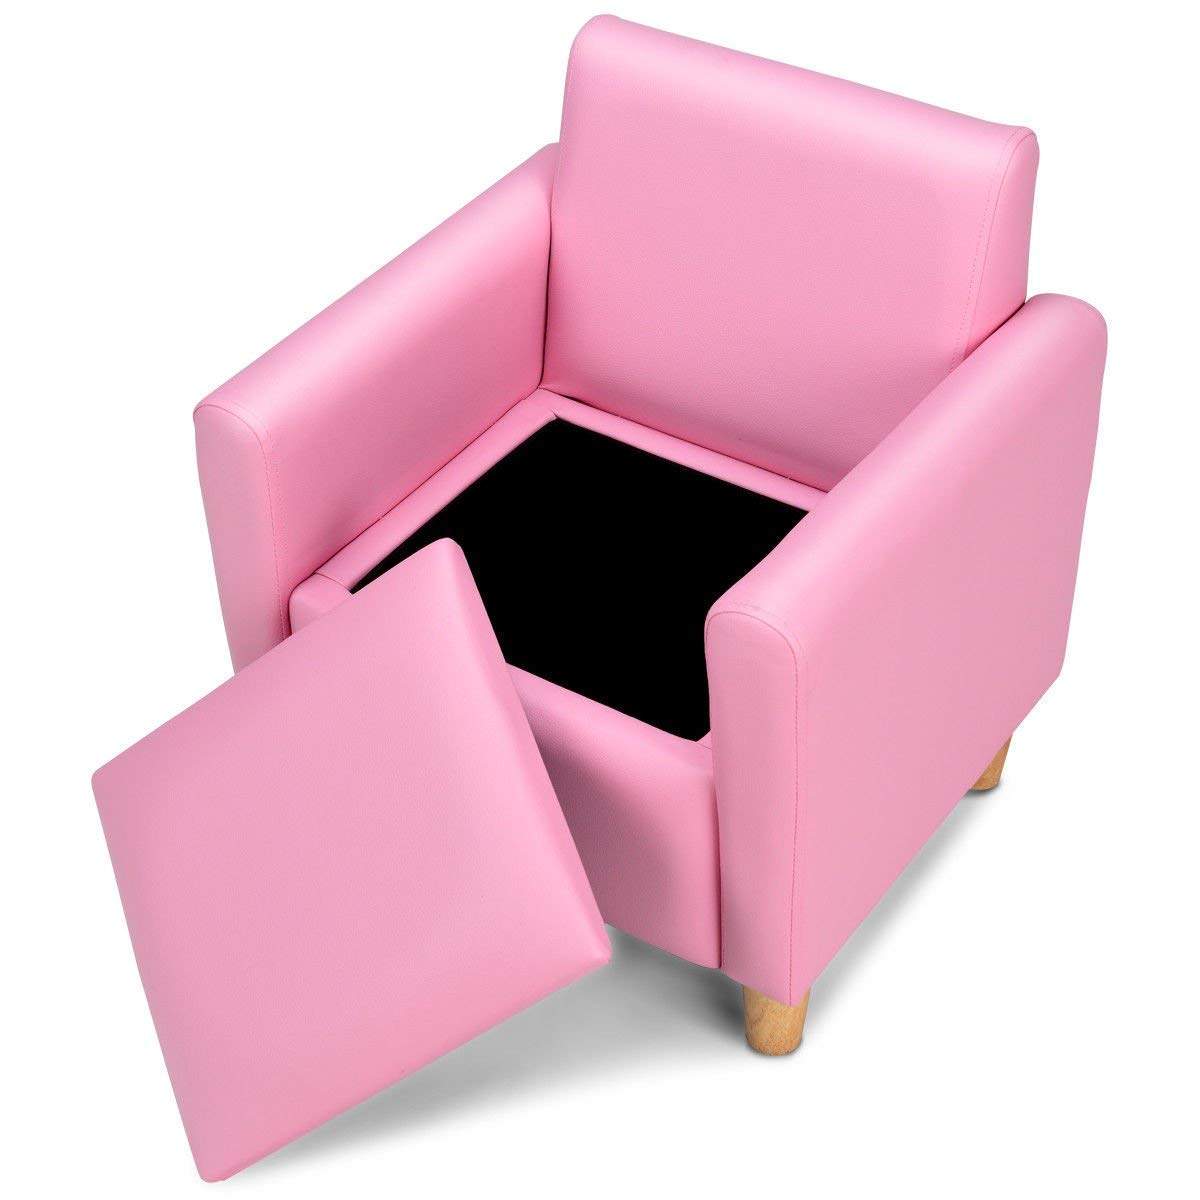 HONEY JOY Kids Sofa, Upholstered Armrest, Sturdy Wood Construction, Toddler Couch with Storage Box (Single Seat, Pink)